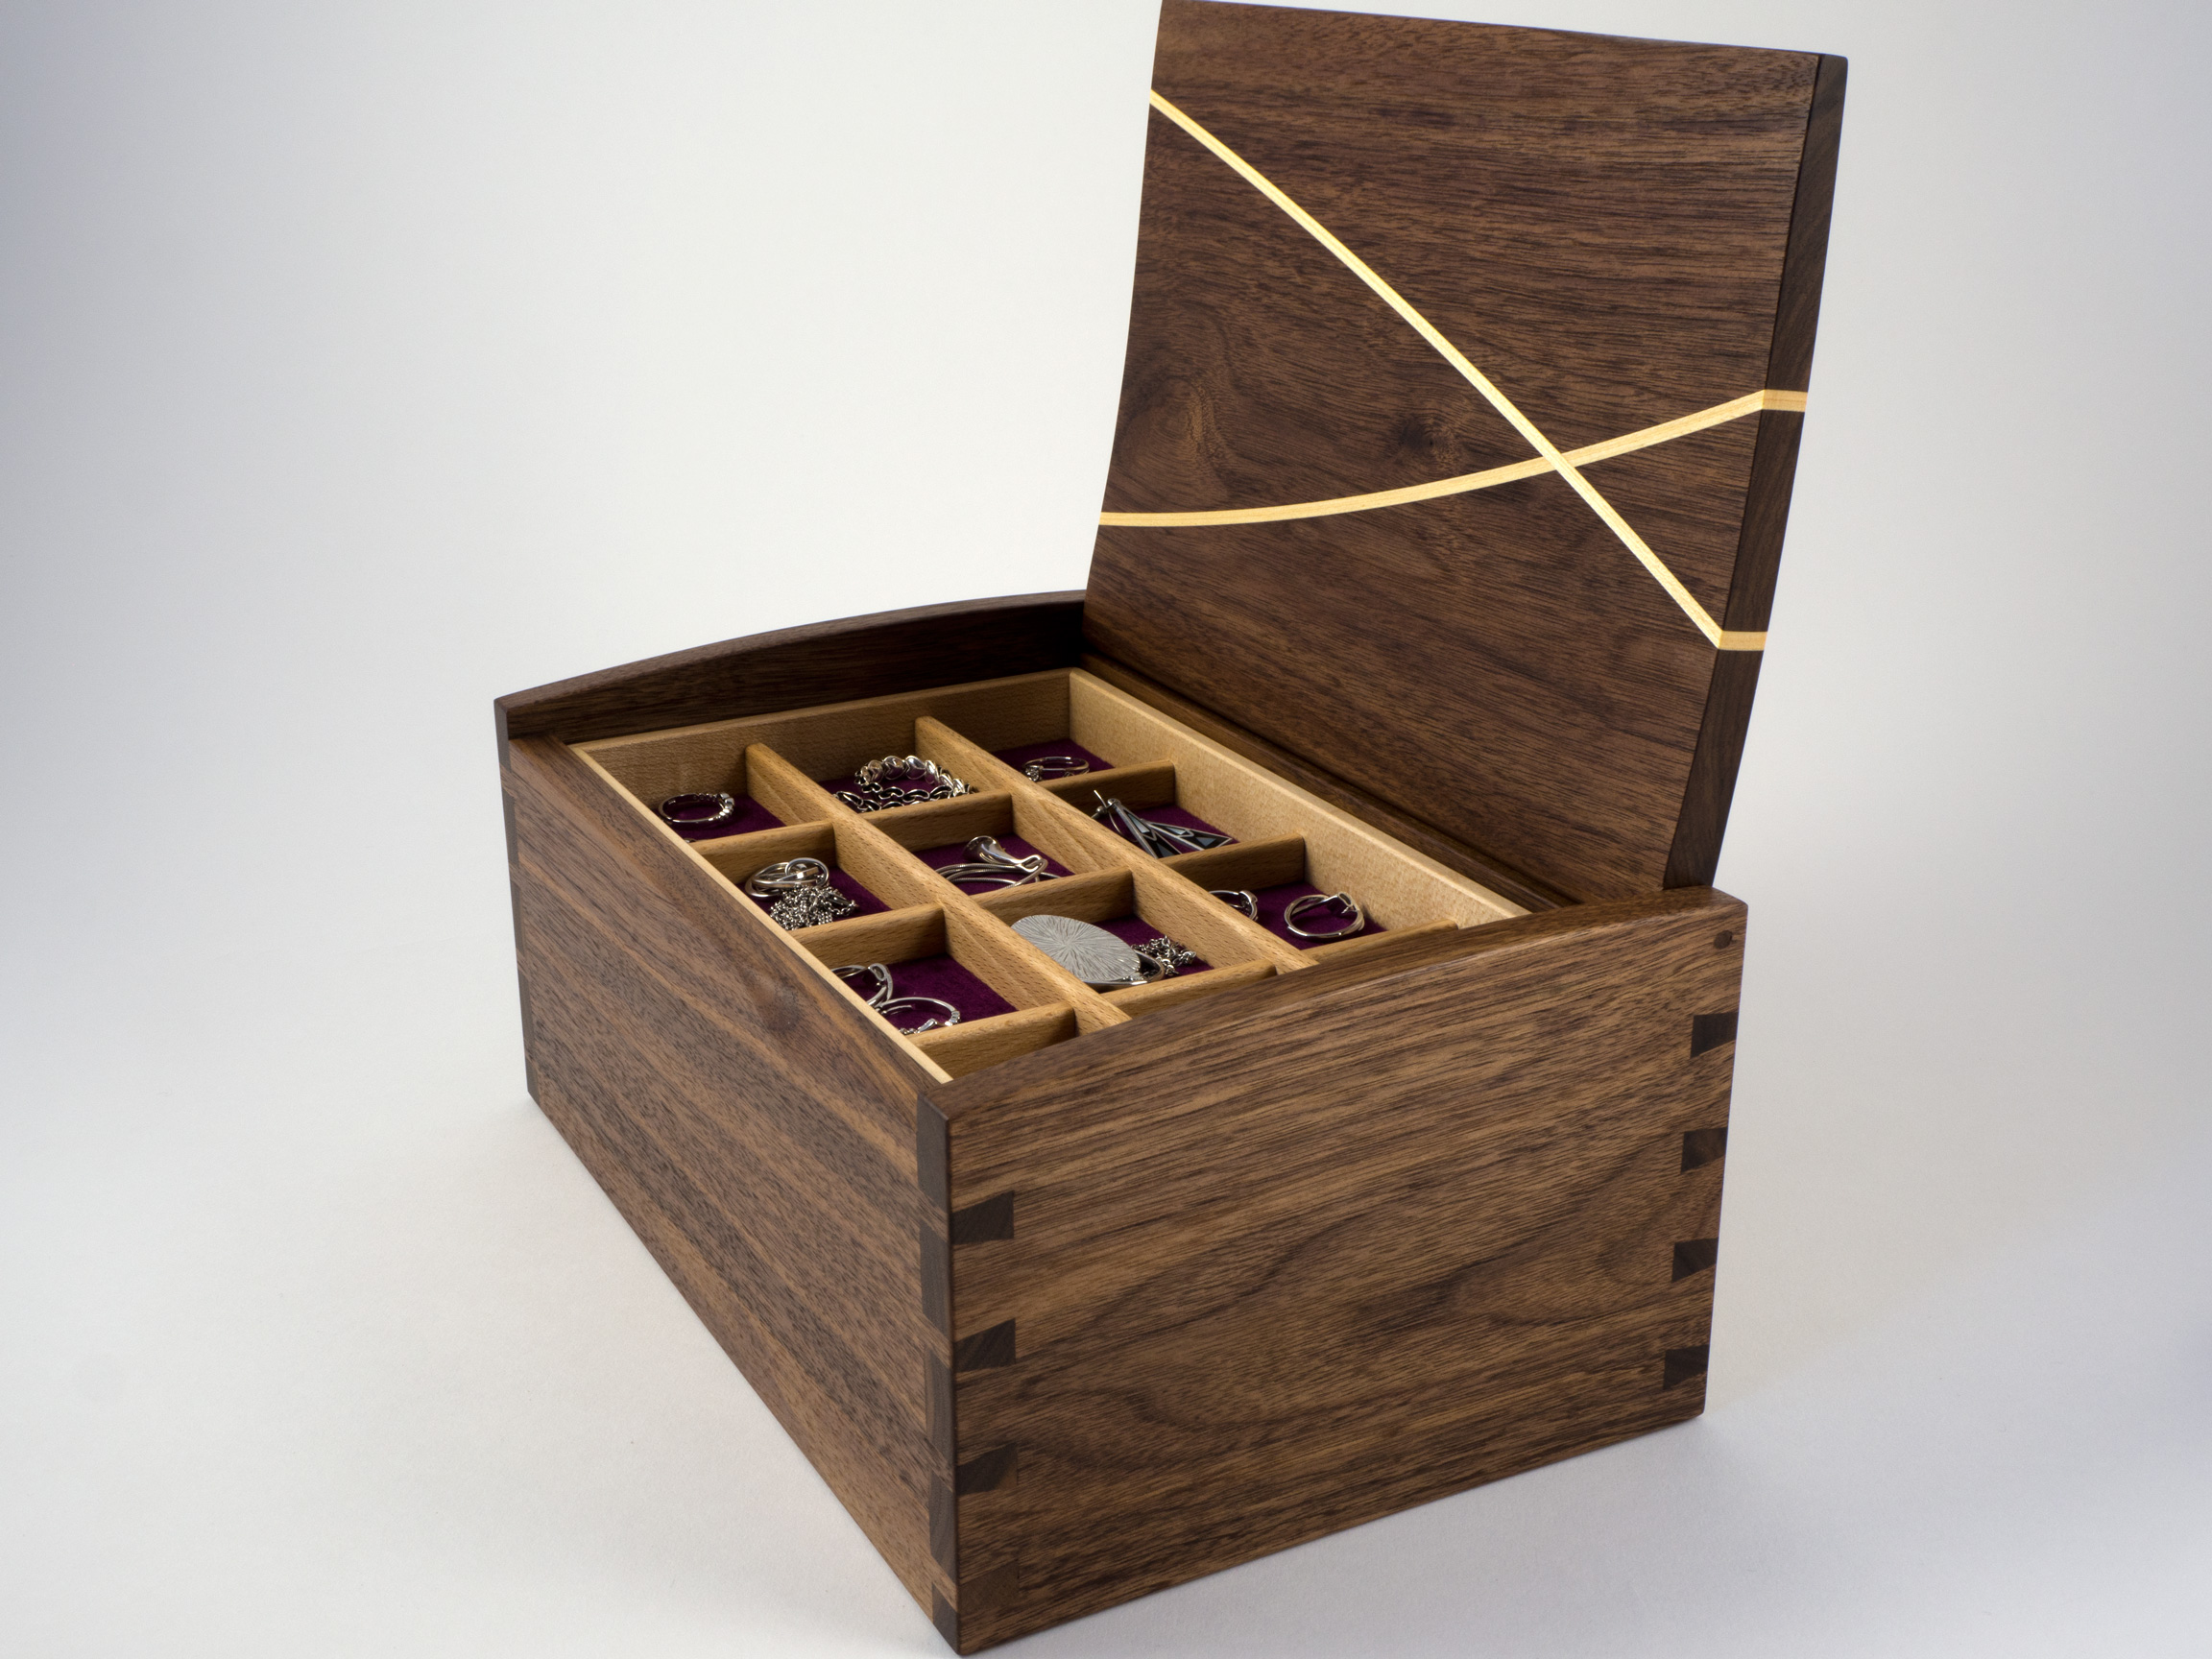 Walnut 'Winding Paths' jewellery box